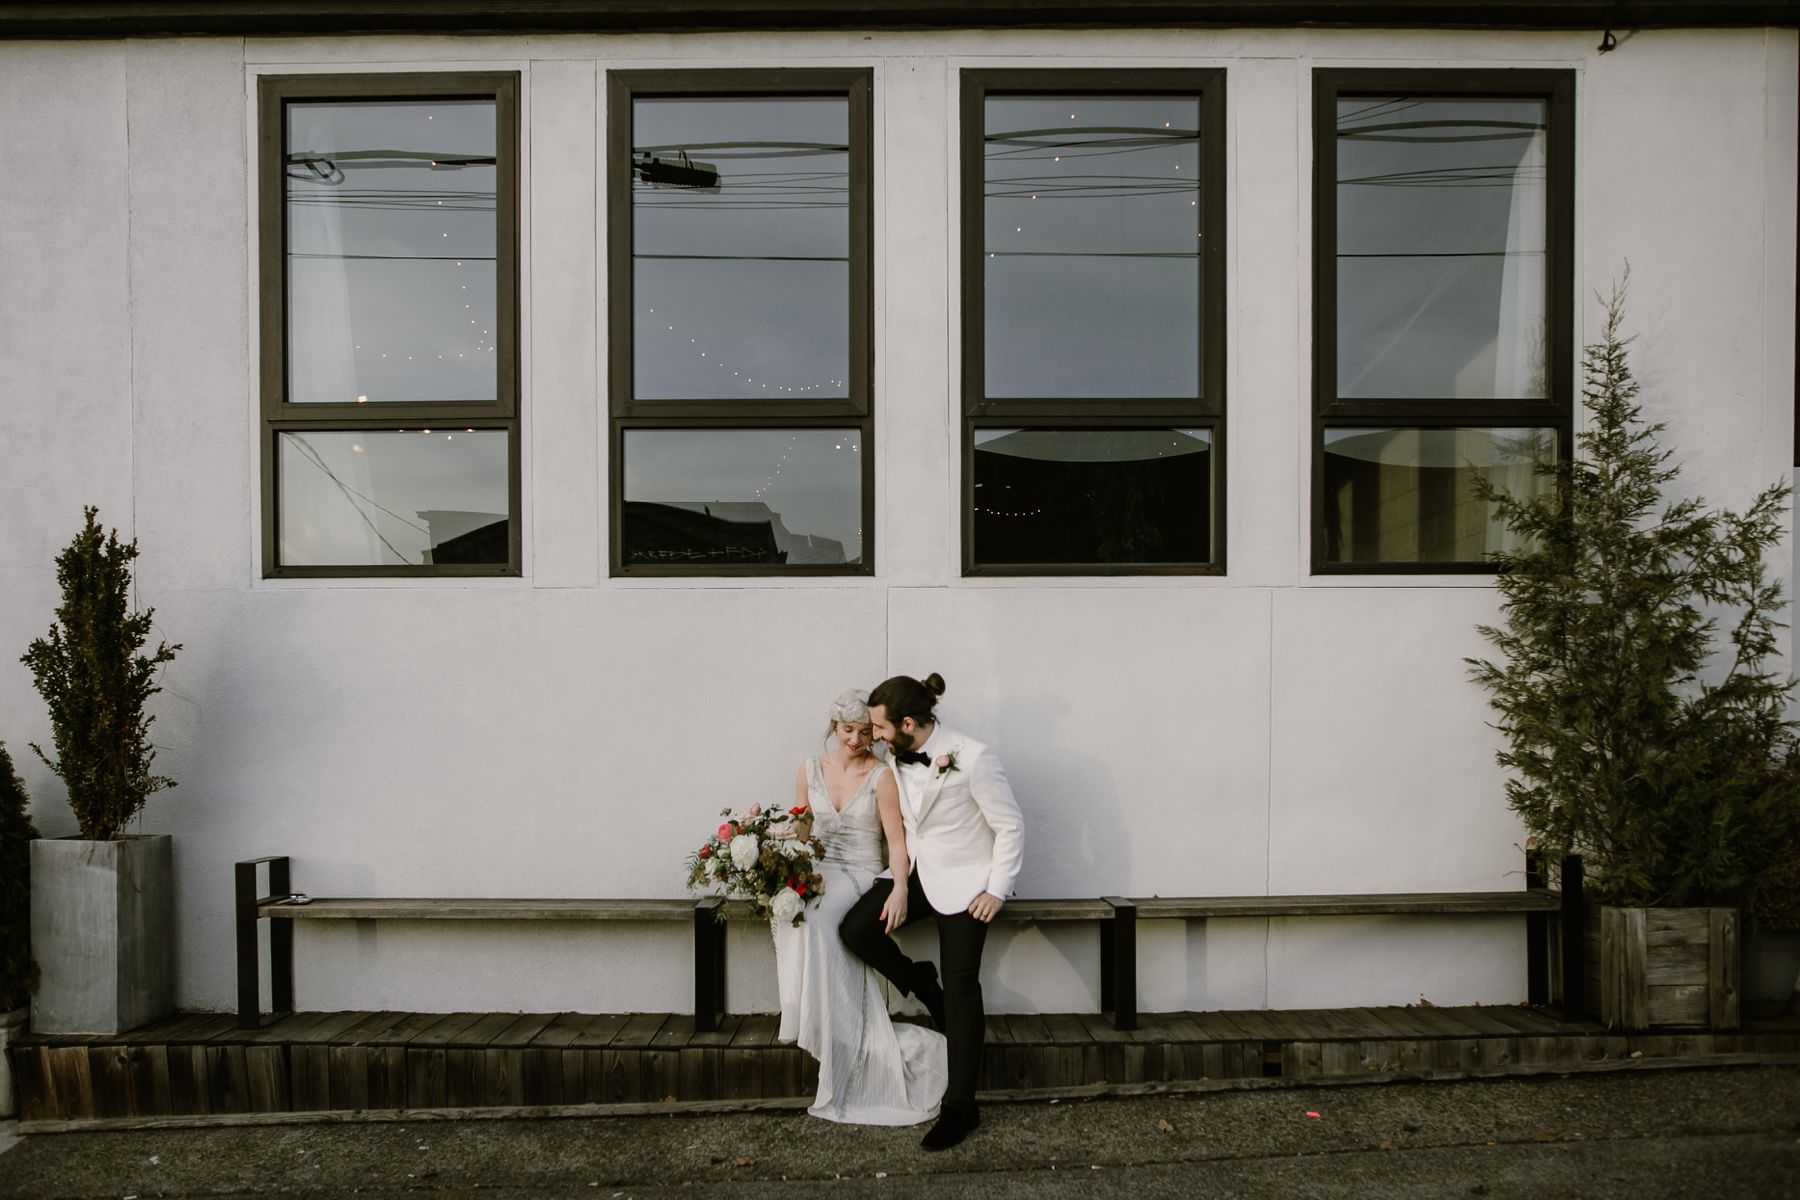 A bride and groom at their Union/Pine wedding in Portland, OR